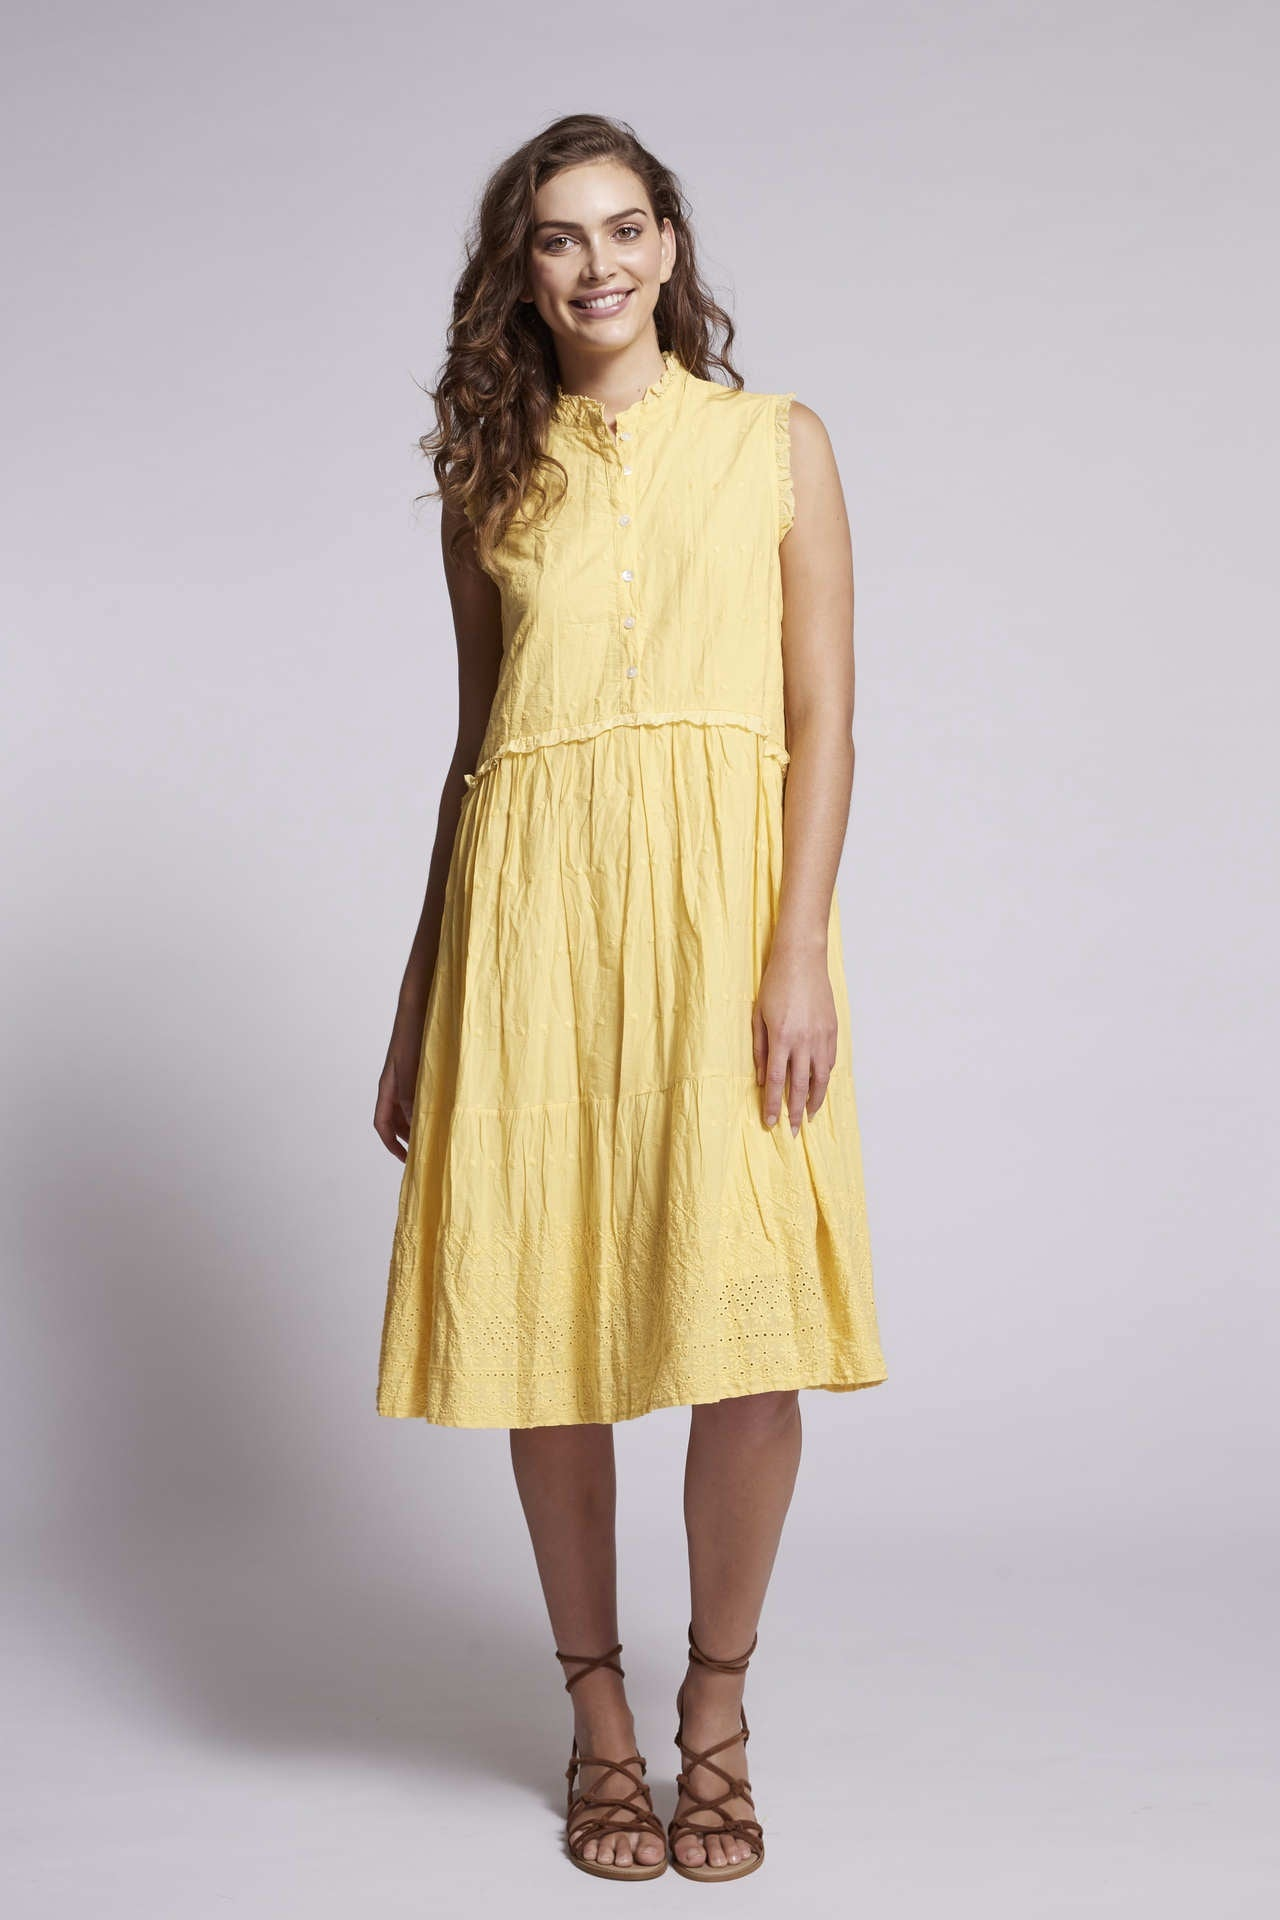 BRUNO Chloe Dress - Anglaise Primrose